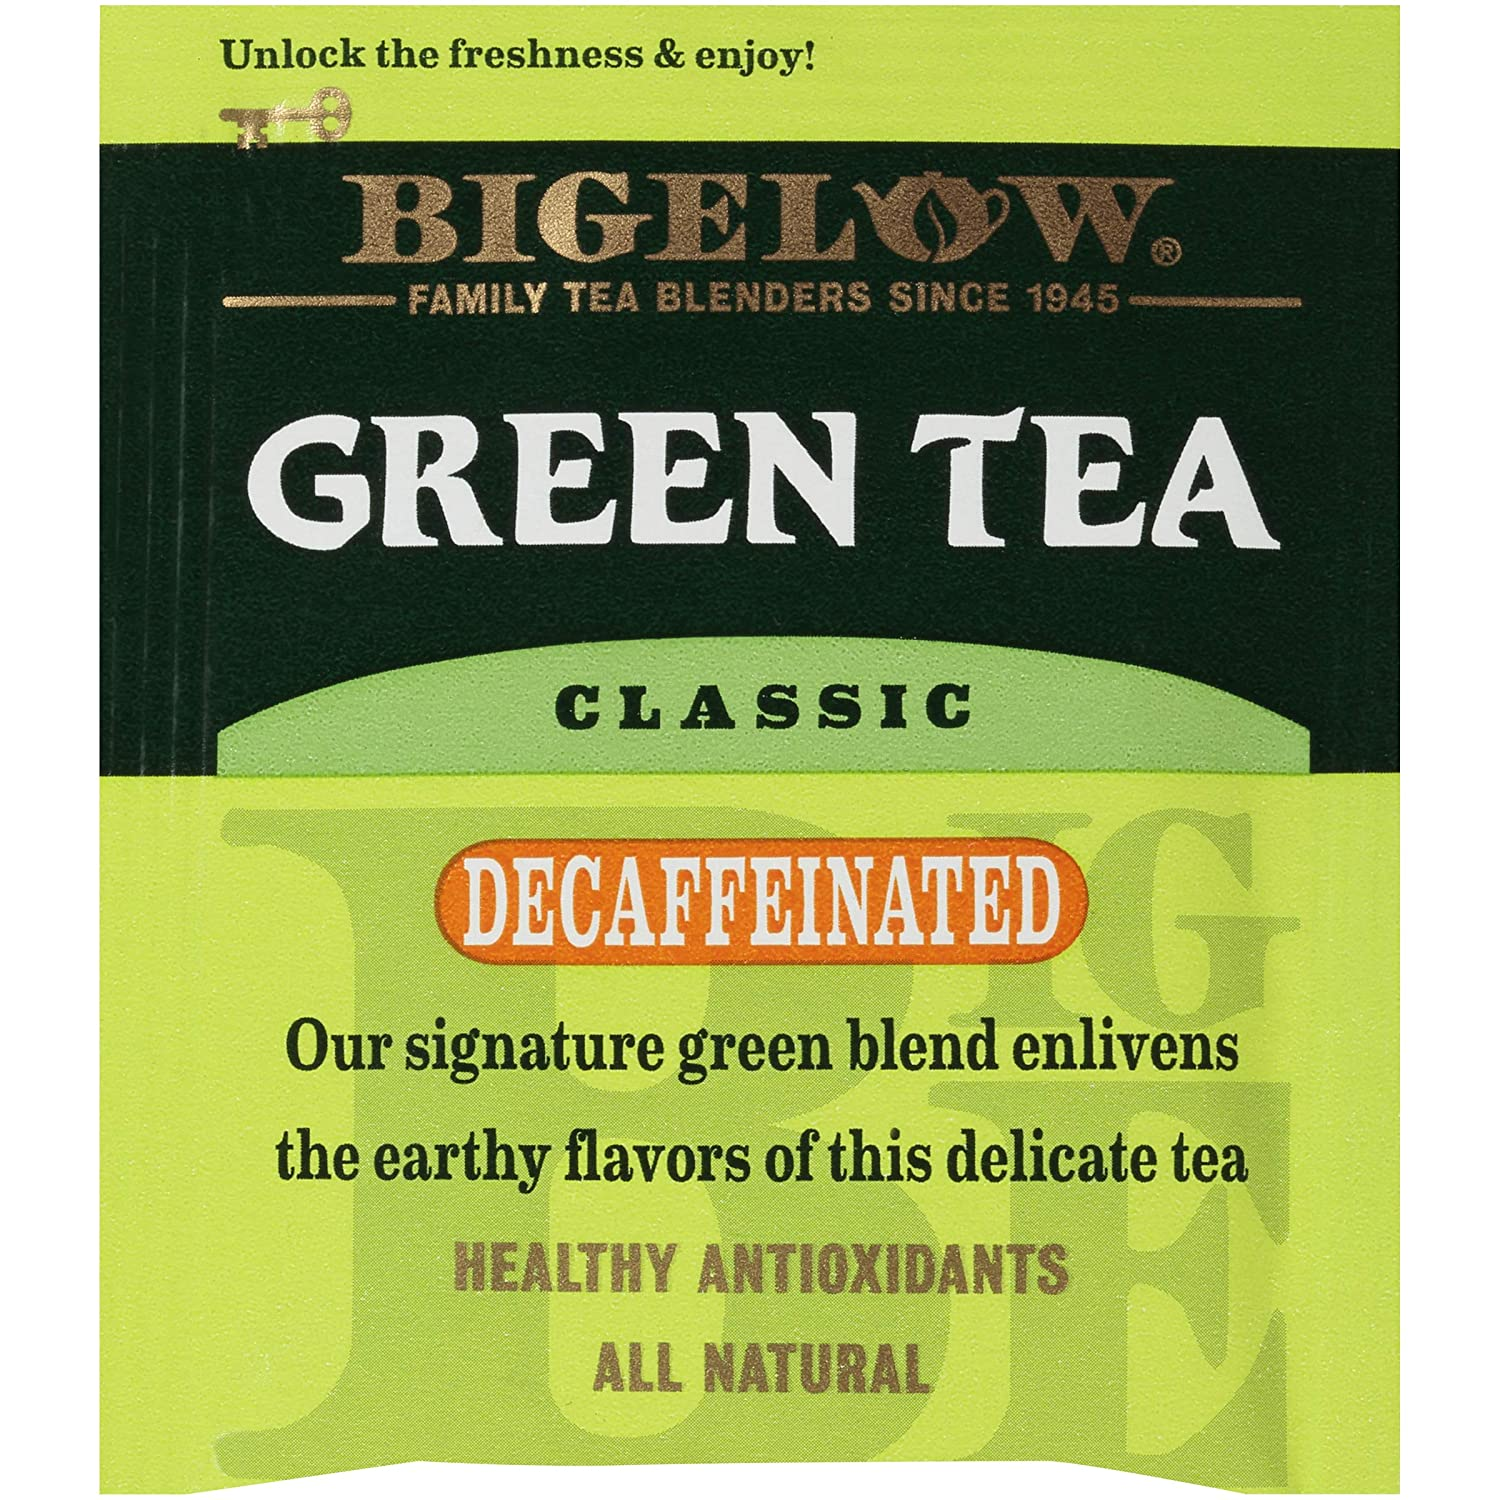 Bigelow Decaffeinated Green Tea Bags, 20 Count Box (Pack of 6) Decaf Green Tea, 120 Tea Bags Total